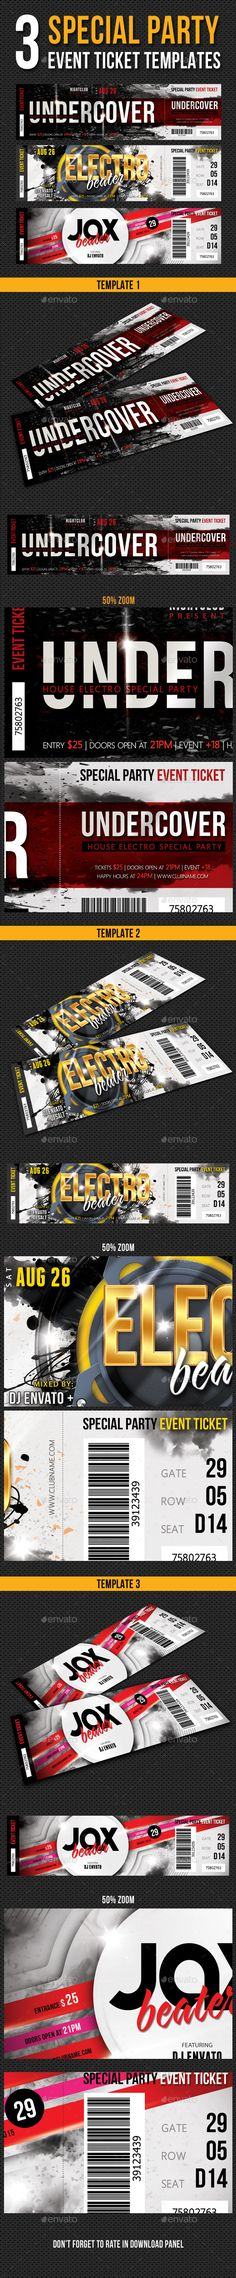 Inverto Party Event Ticket V3 Event ticket, Print templates and - party tickets templates